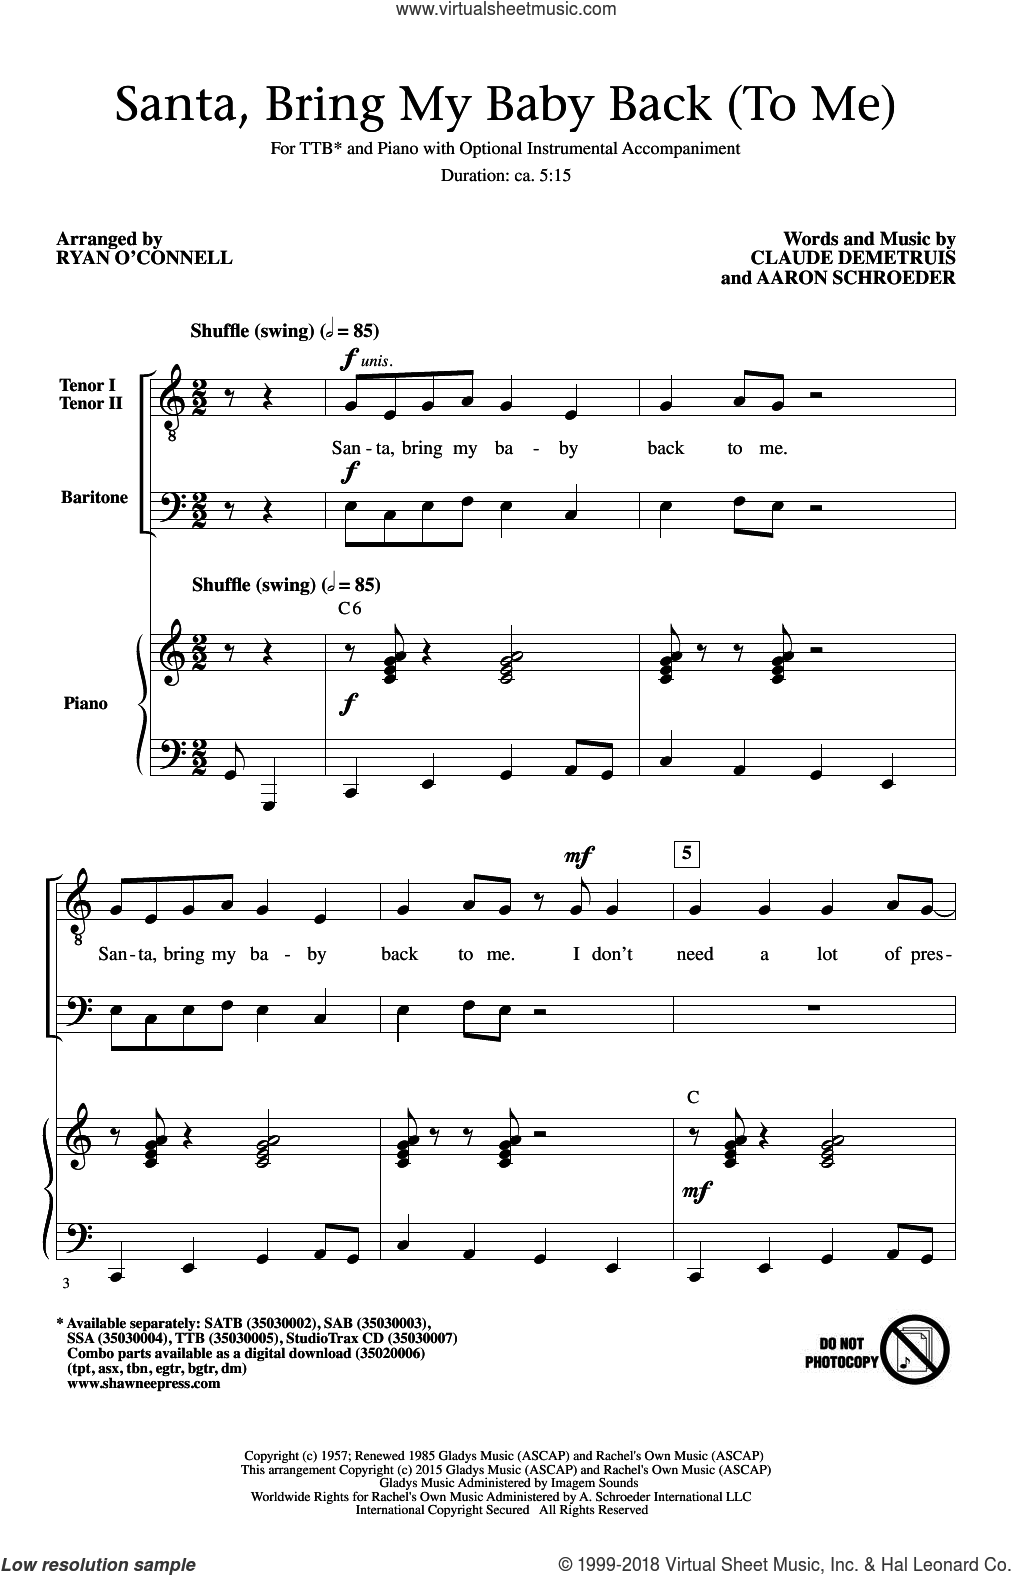 Santa, Bring My Baby Back (To Me) sheet music for choir (TTBB: tenor, bass) by Aaron Schroeder, Elvis Presley and Claude DeMetruis, intermediate skill level